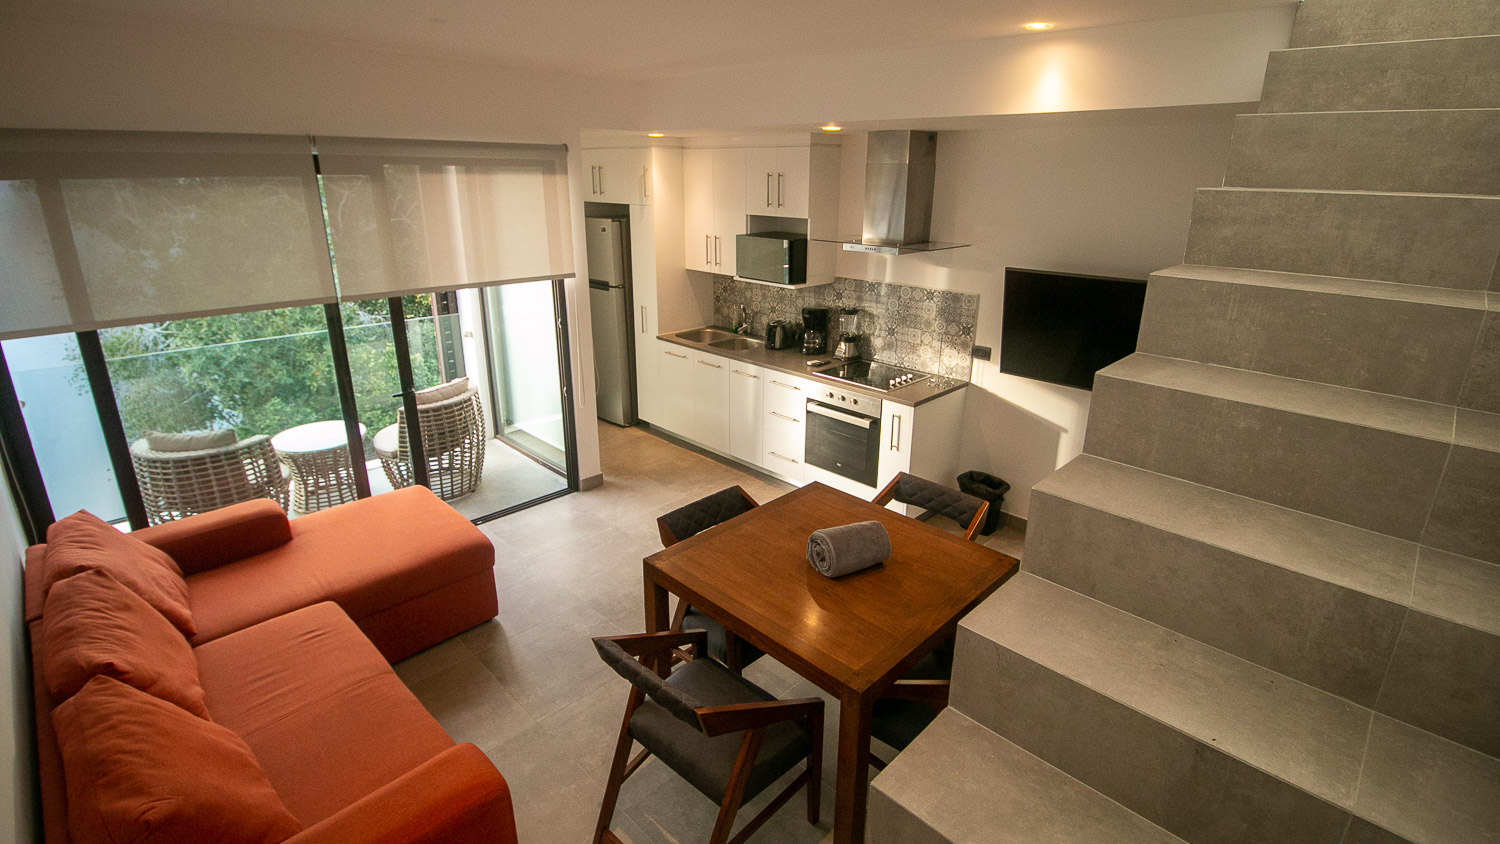 Fully furnished condo to enjoy the wonders of Tulum.